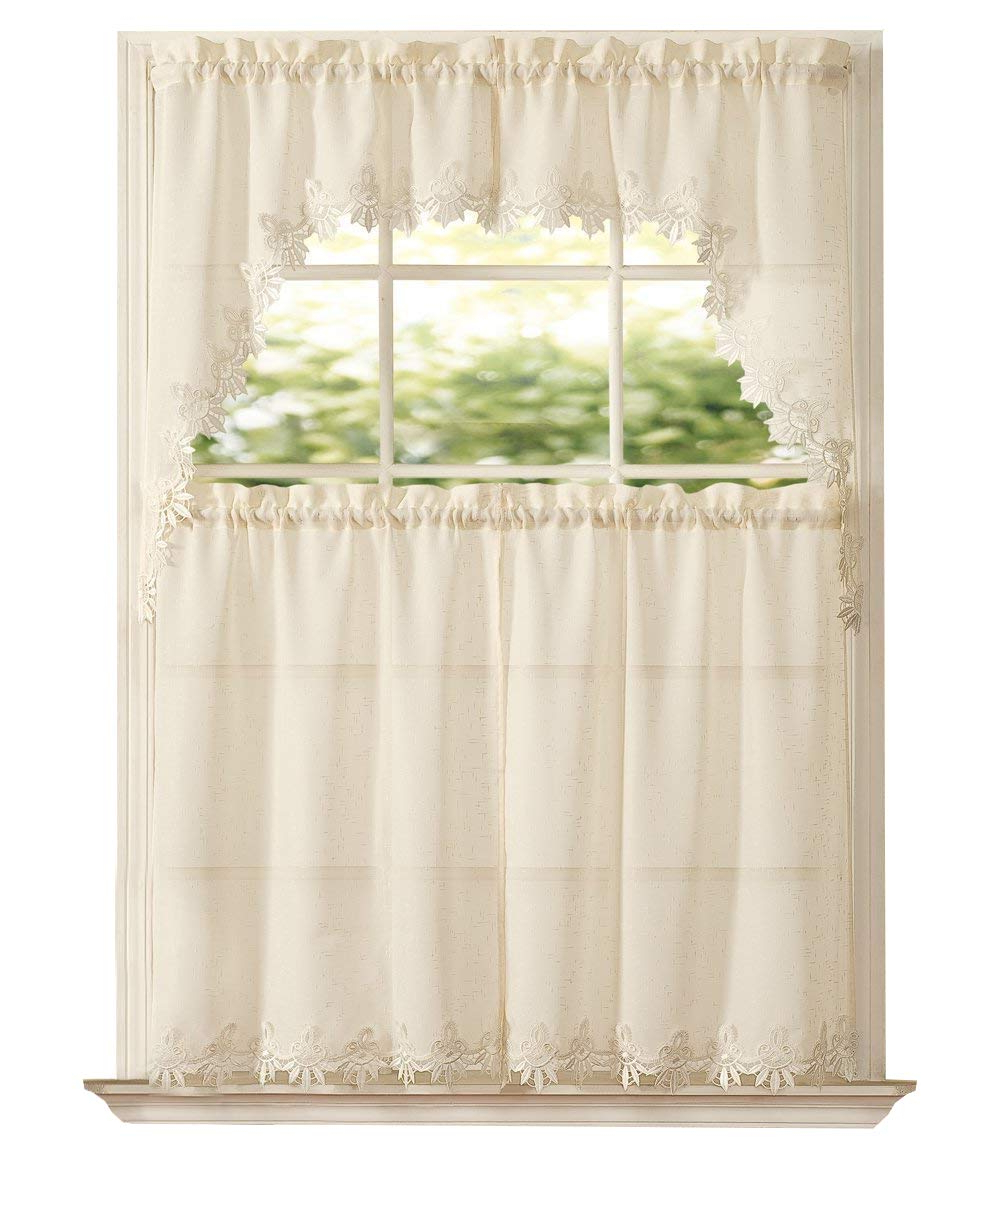 Goodgram Orchard Luxurious Matte Sheer & Macrame Kitchen Curtain Tier & Swag Set Assorted Colors (beige) Regarding Most Up To Date Embroidered 'coffee Cup' 5 Piece Kitchen Curtain Sets (View 9 of 20)